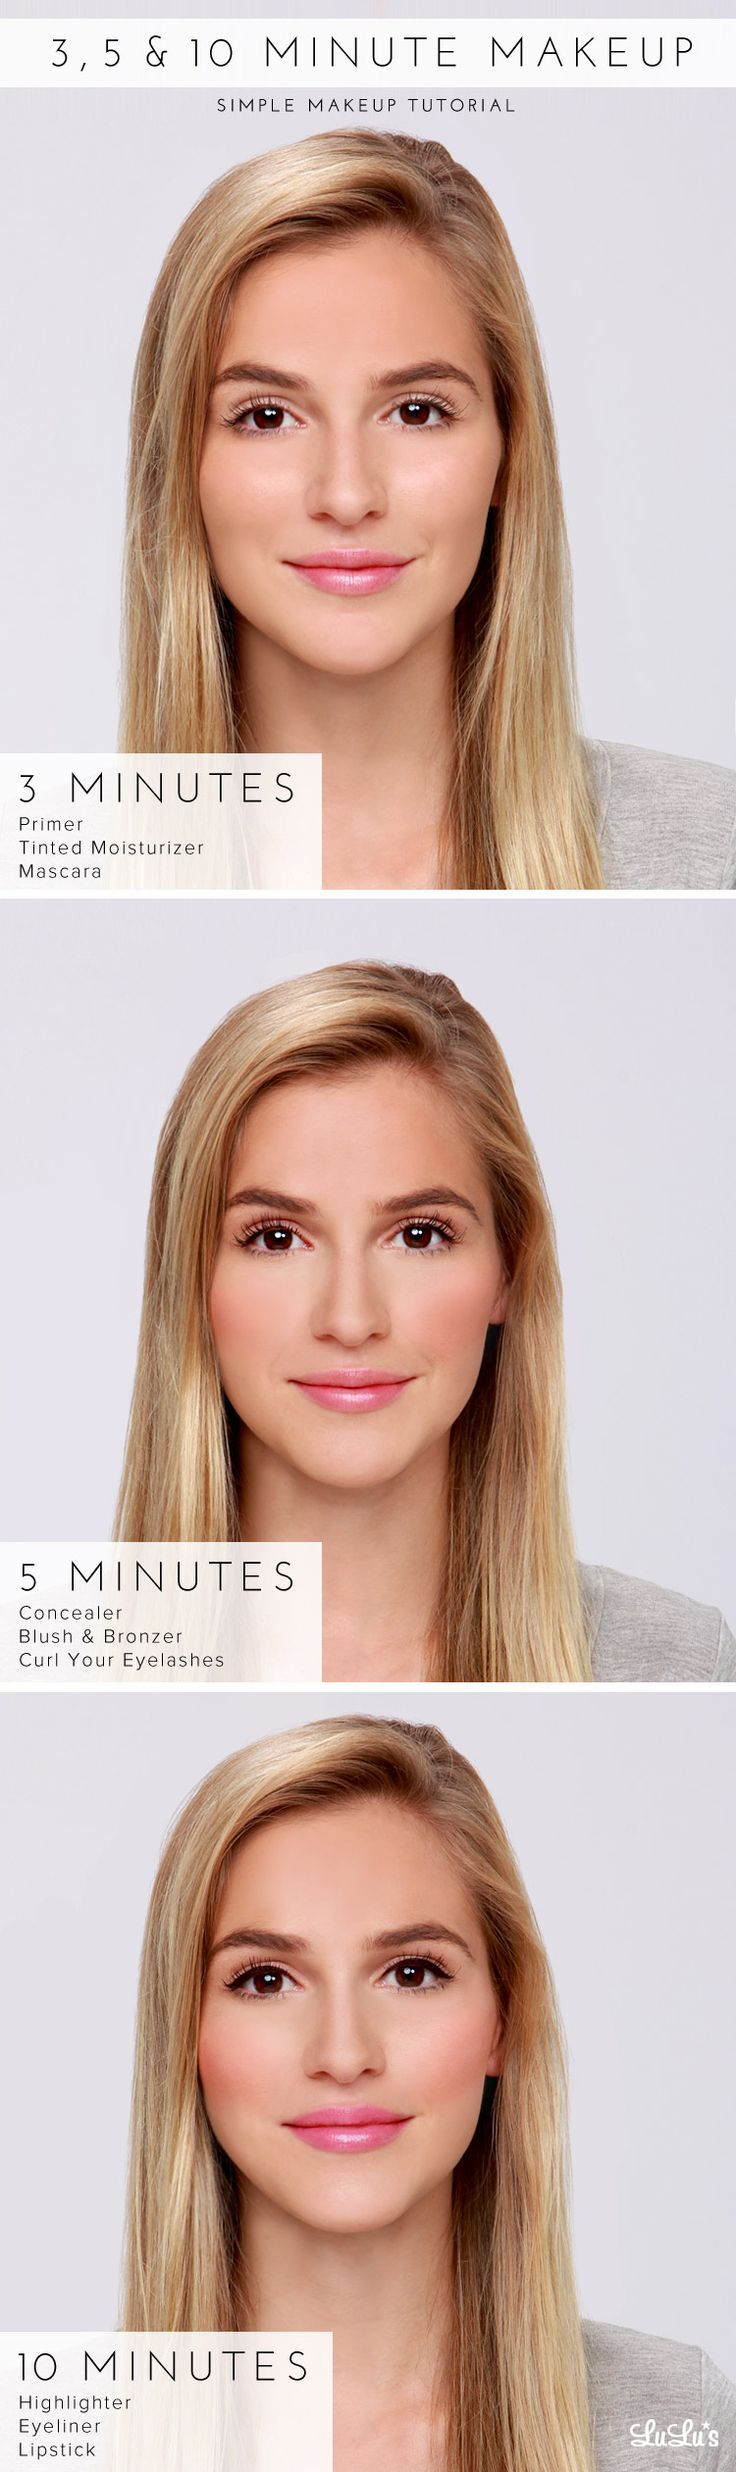 Lulus HowTo 3, 5 & 10 Minute Makeup Tutorial Quick